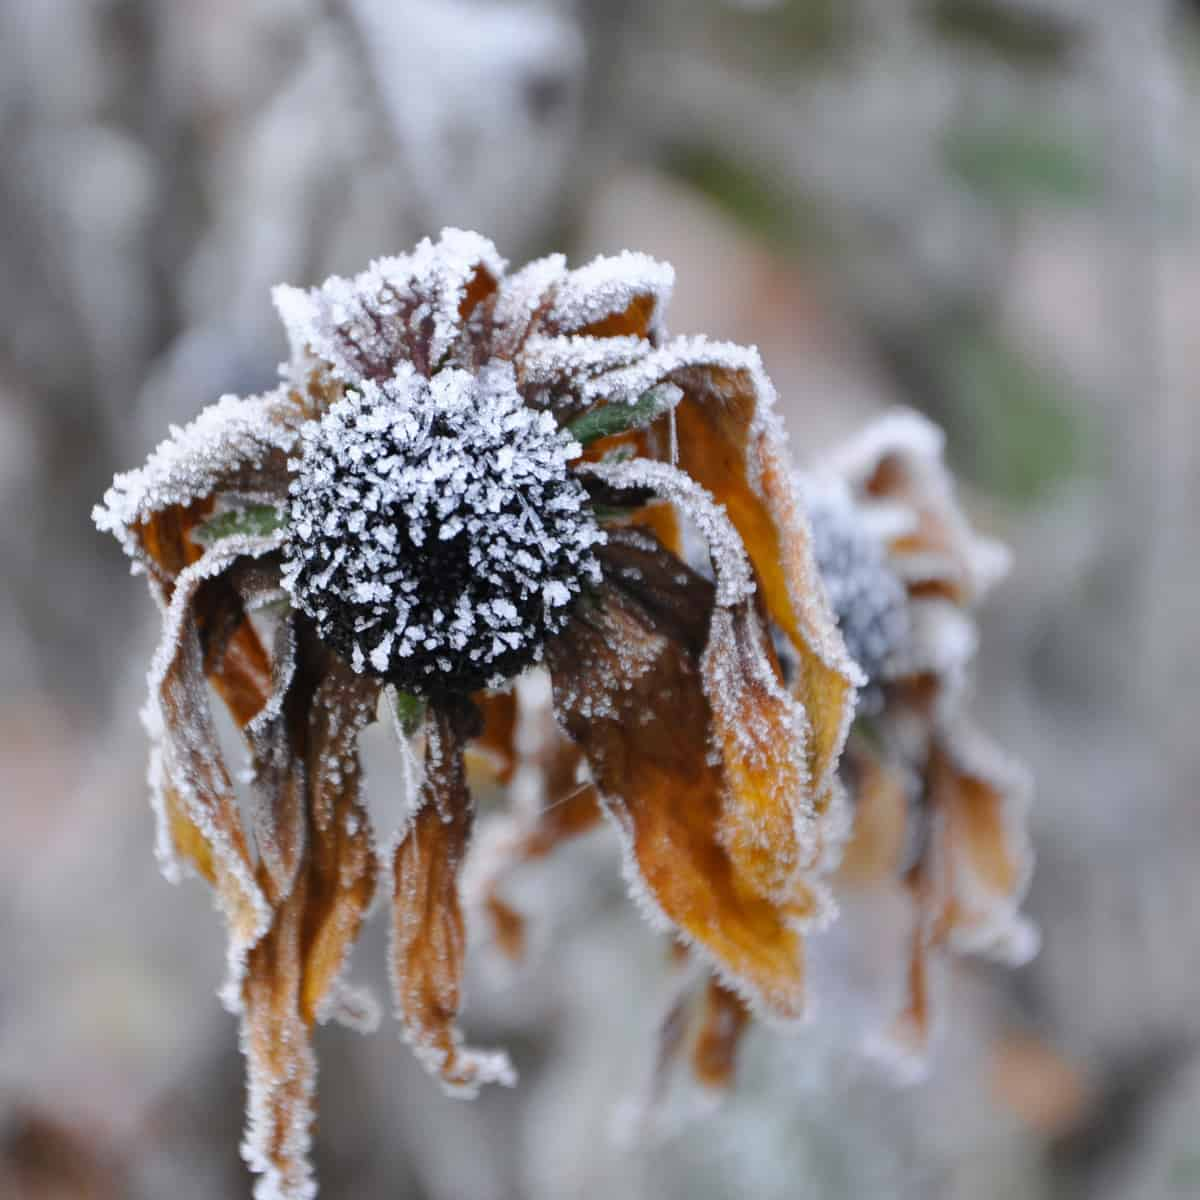 Closeup of a frozen faded blossom of a cone flower